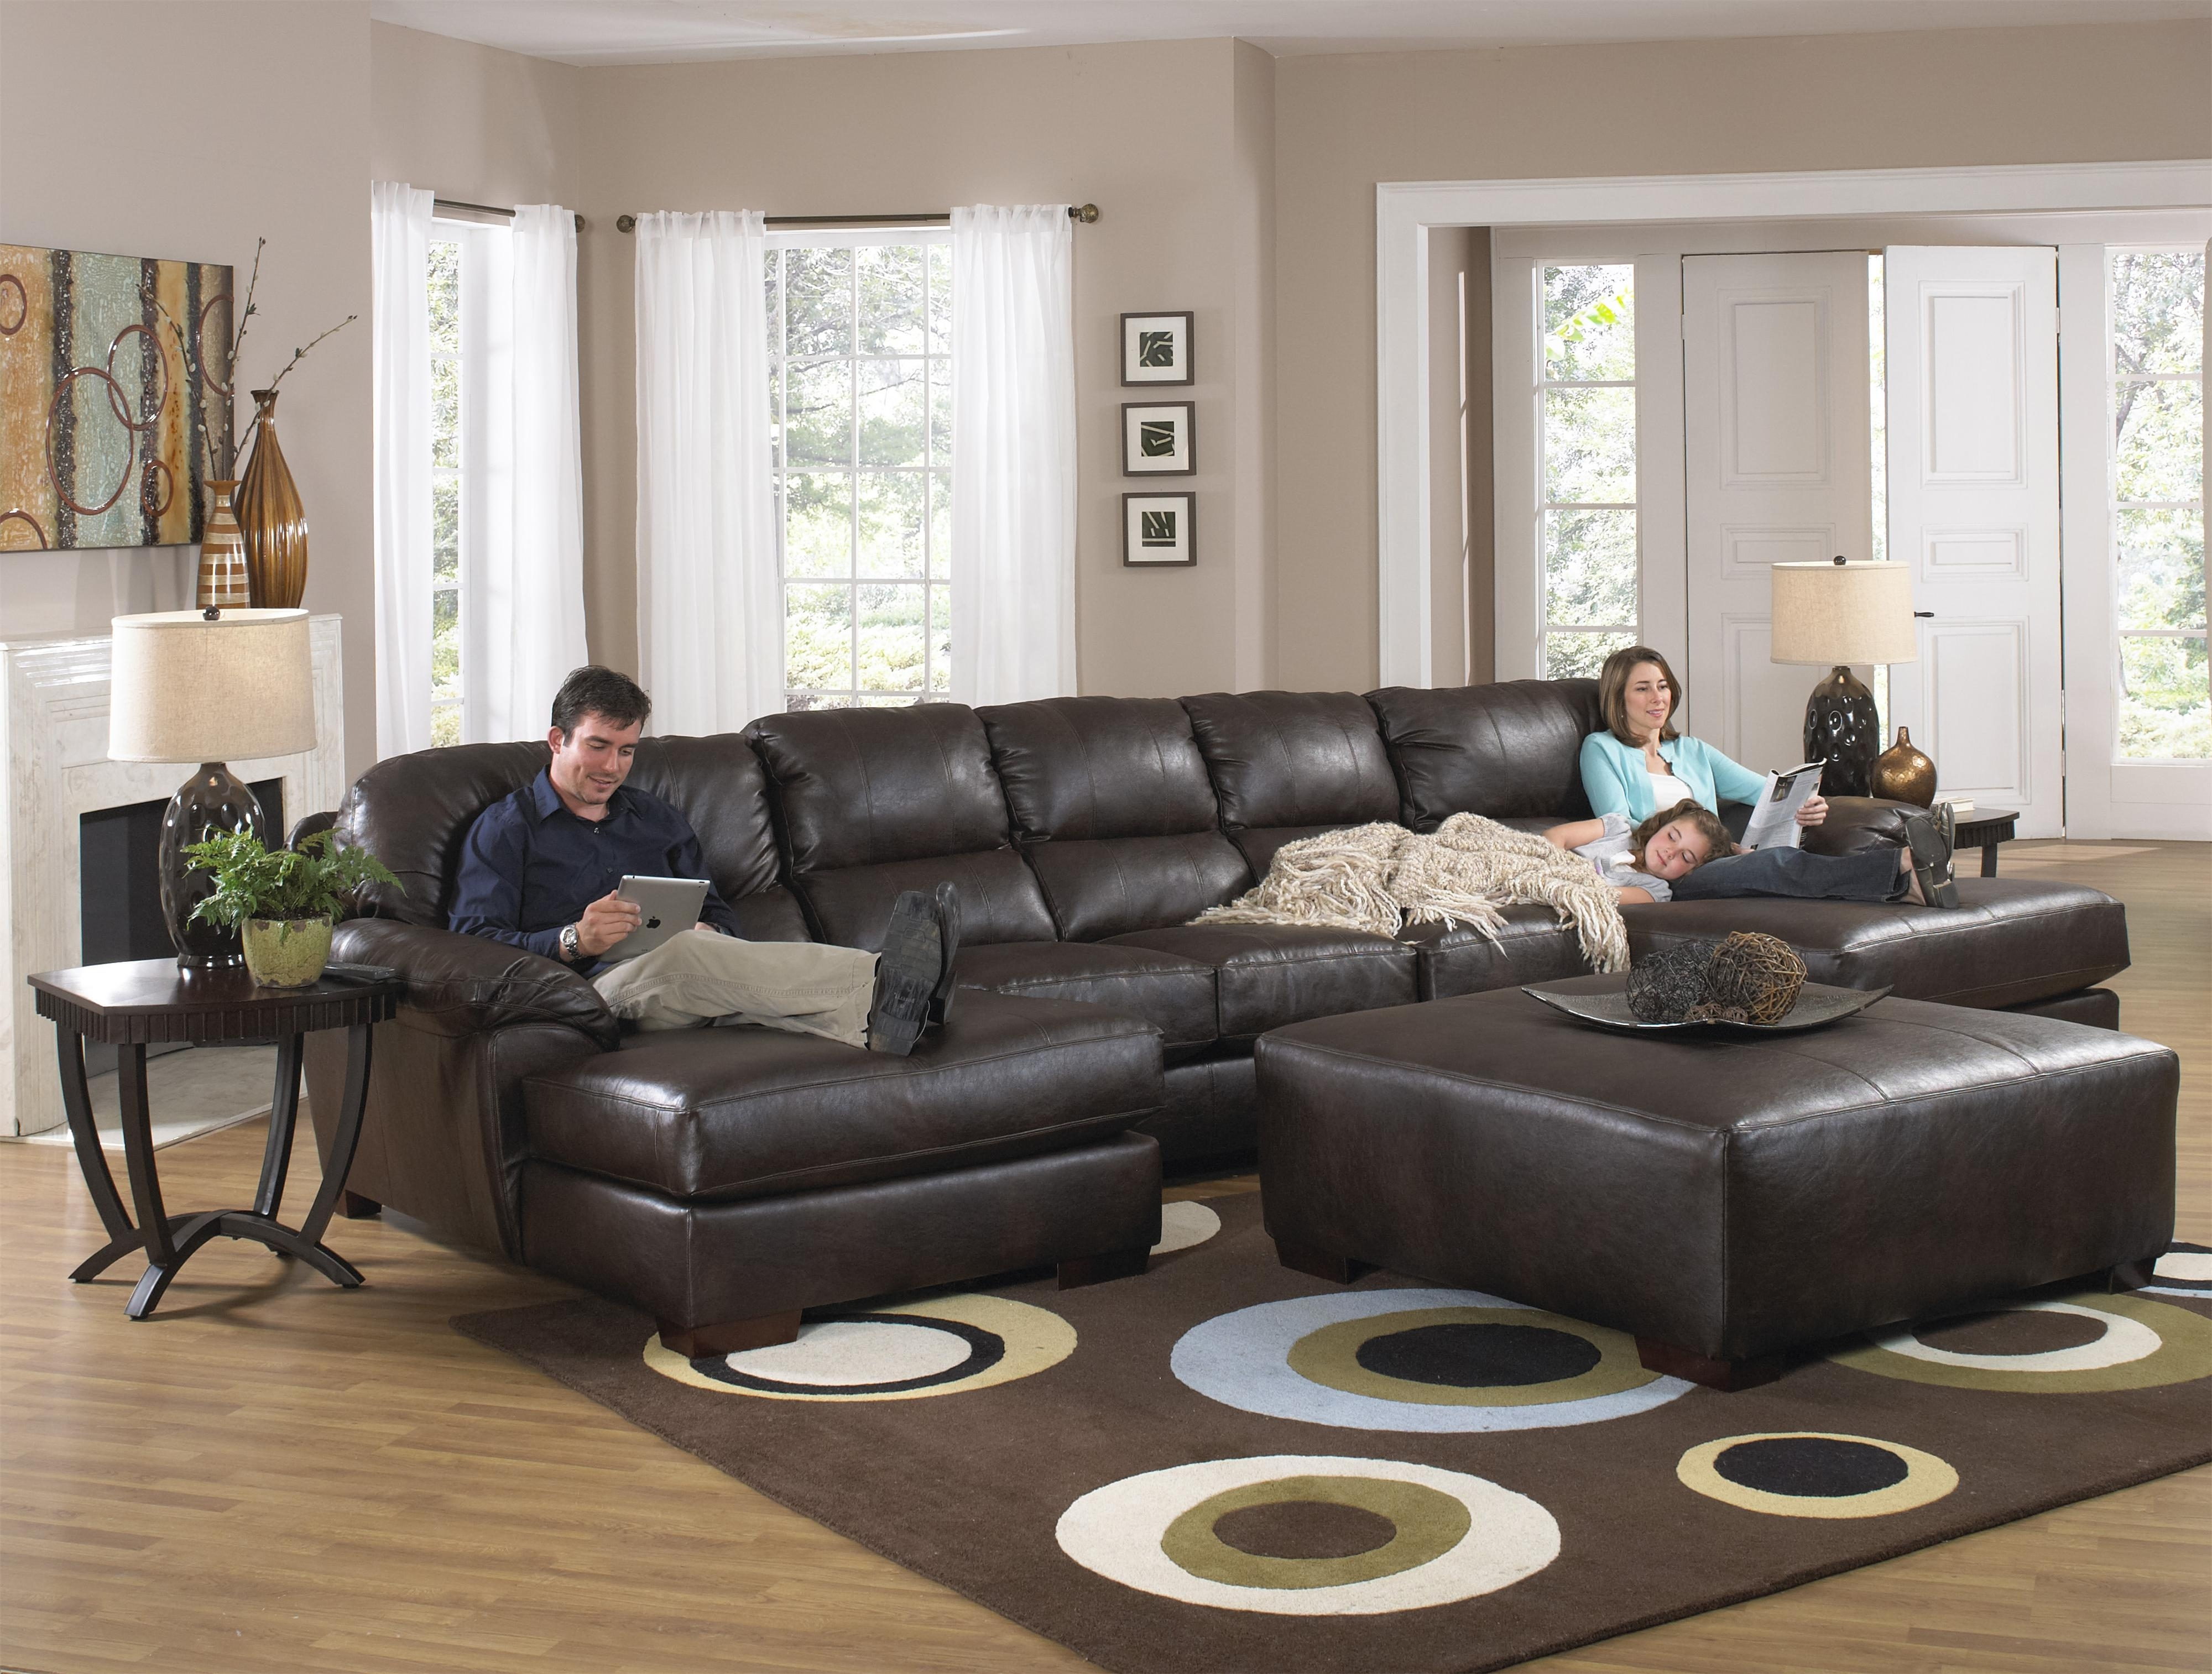 Popular Sofa : Beautiful Large Sectional Sofa With Chaise L Shaped Cream Regarding Sofas With Chaise And Ottoman (View 8 of 15)